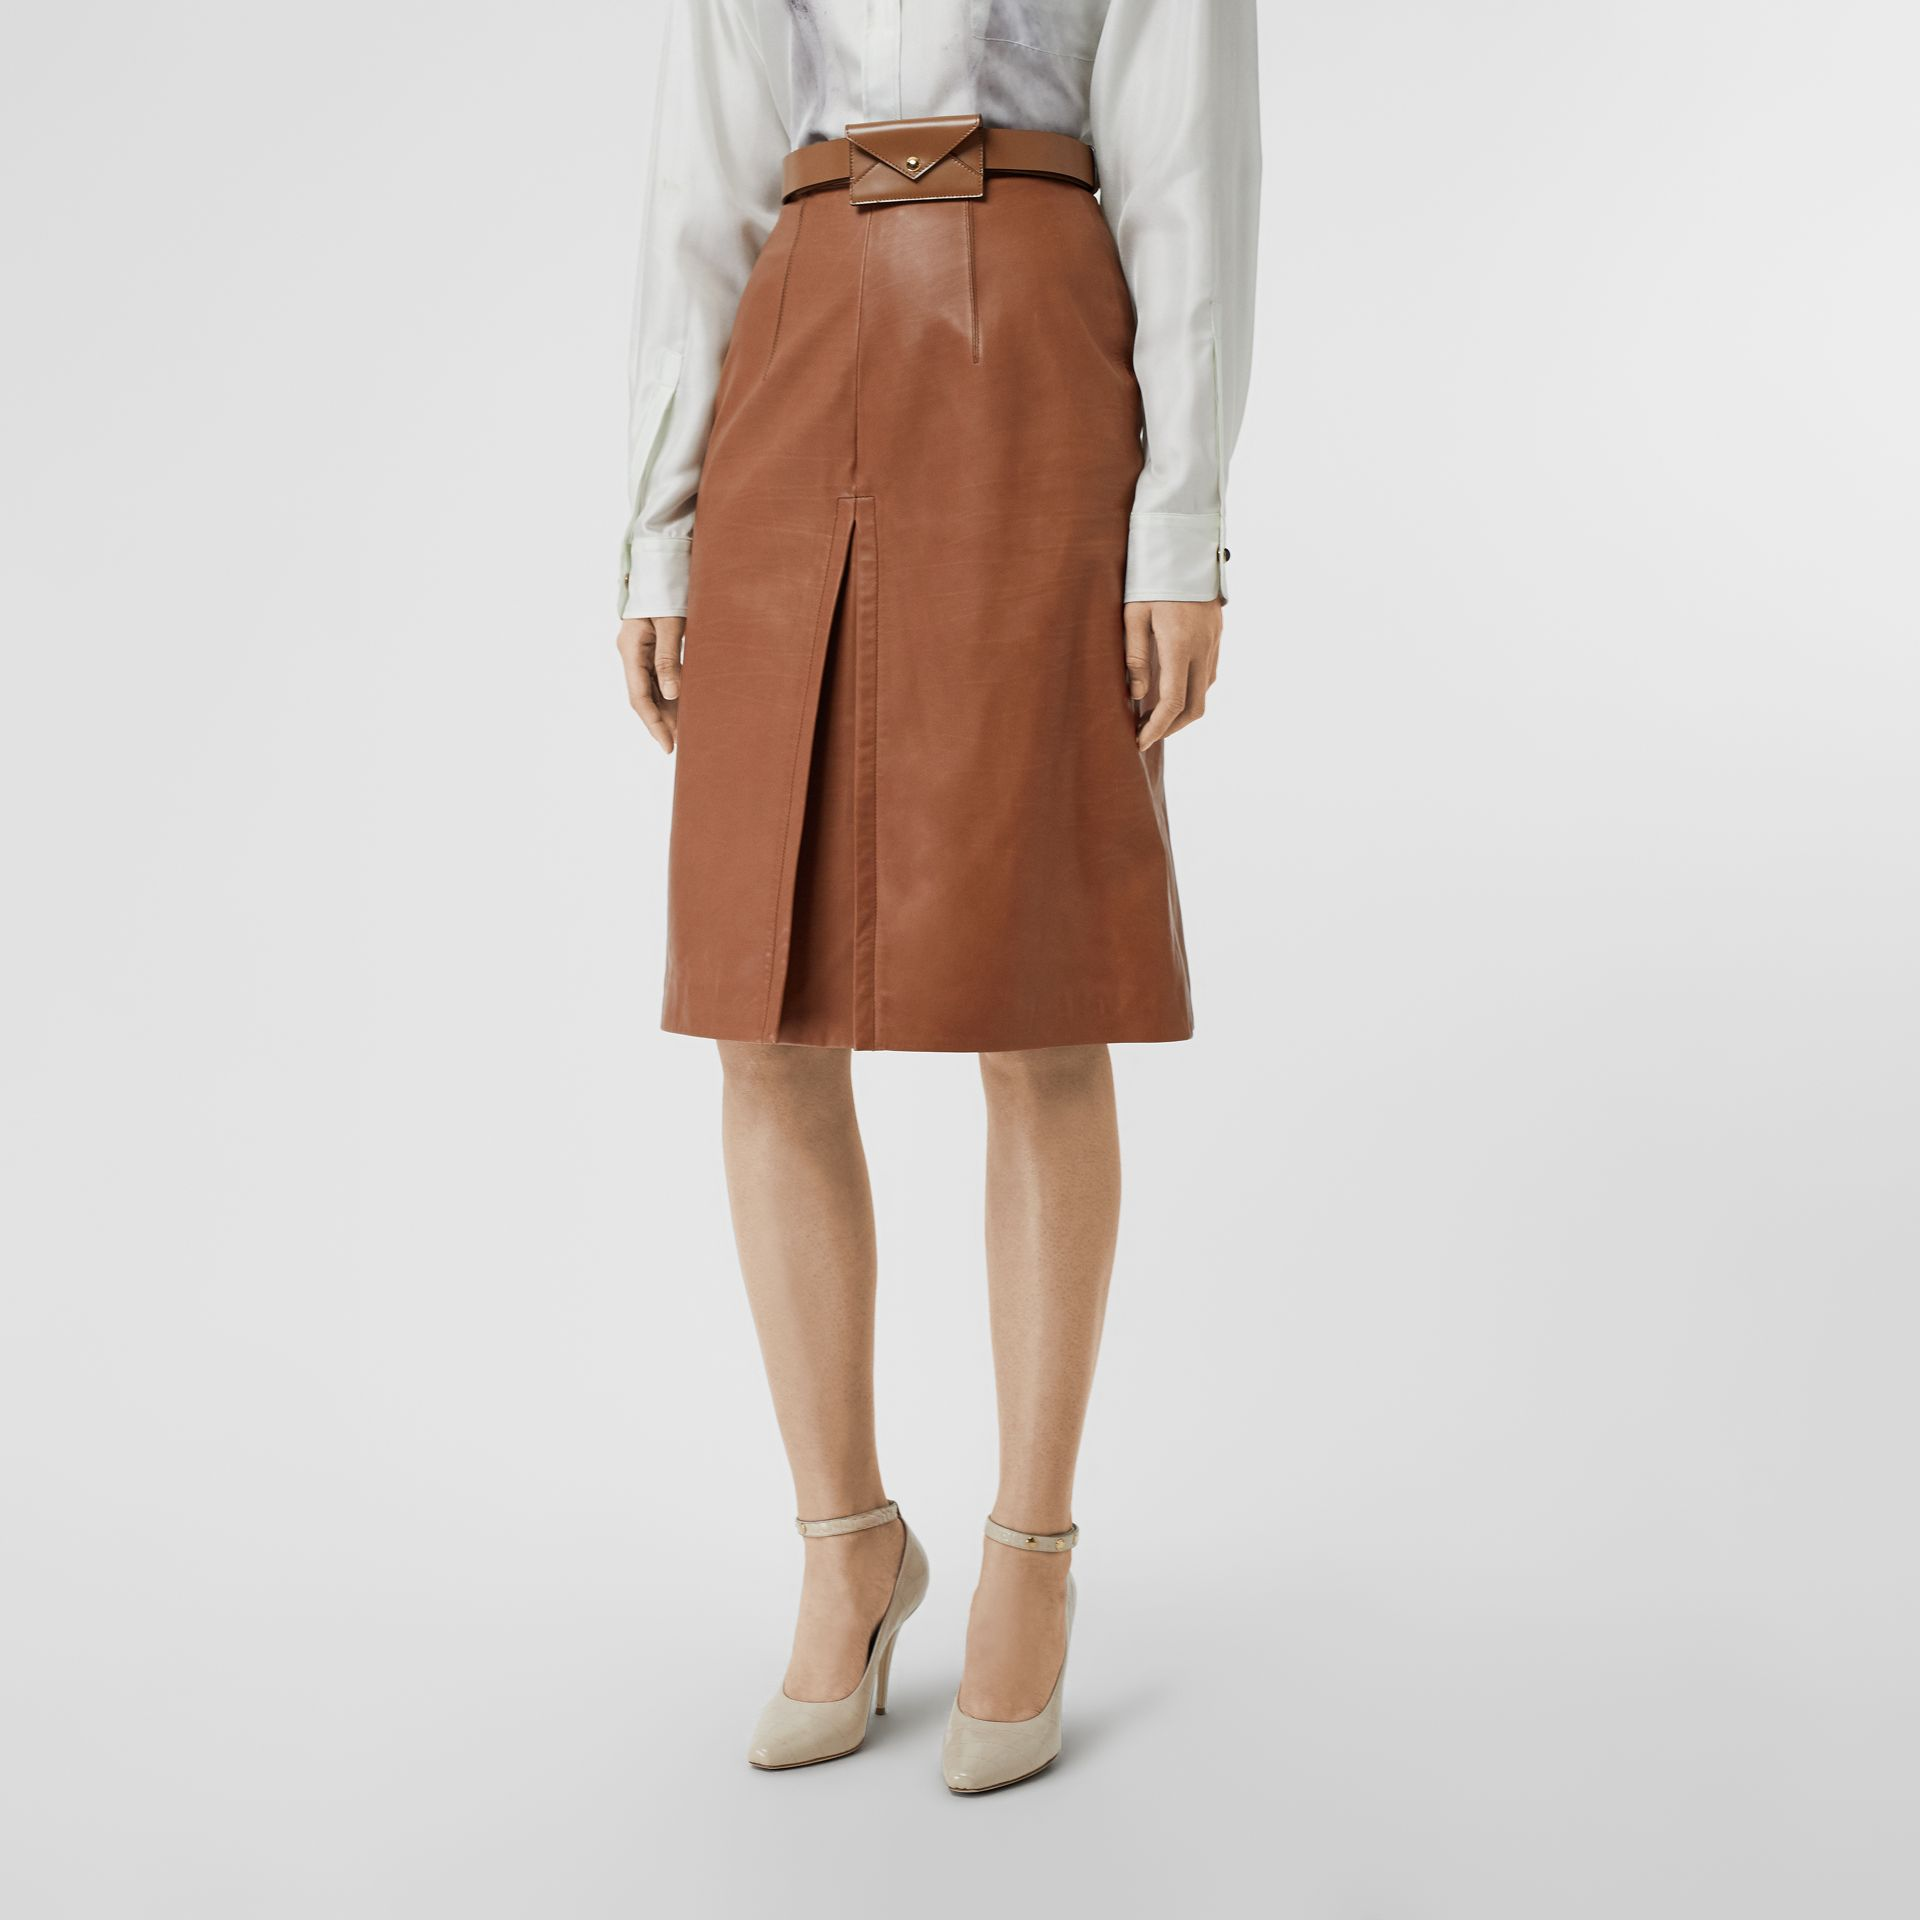 Box Pleat Detail Leather A-line Skirt in Flaxseed - Women | Burberry Australia - gallery image 4